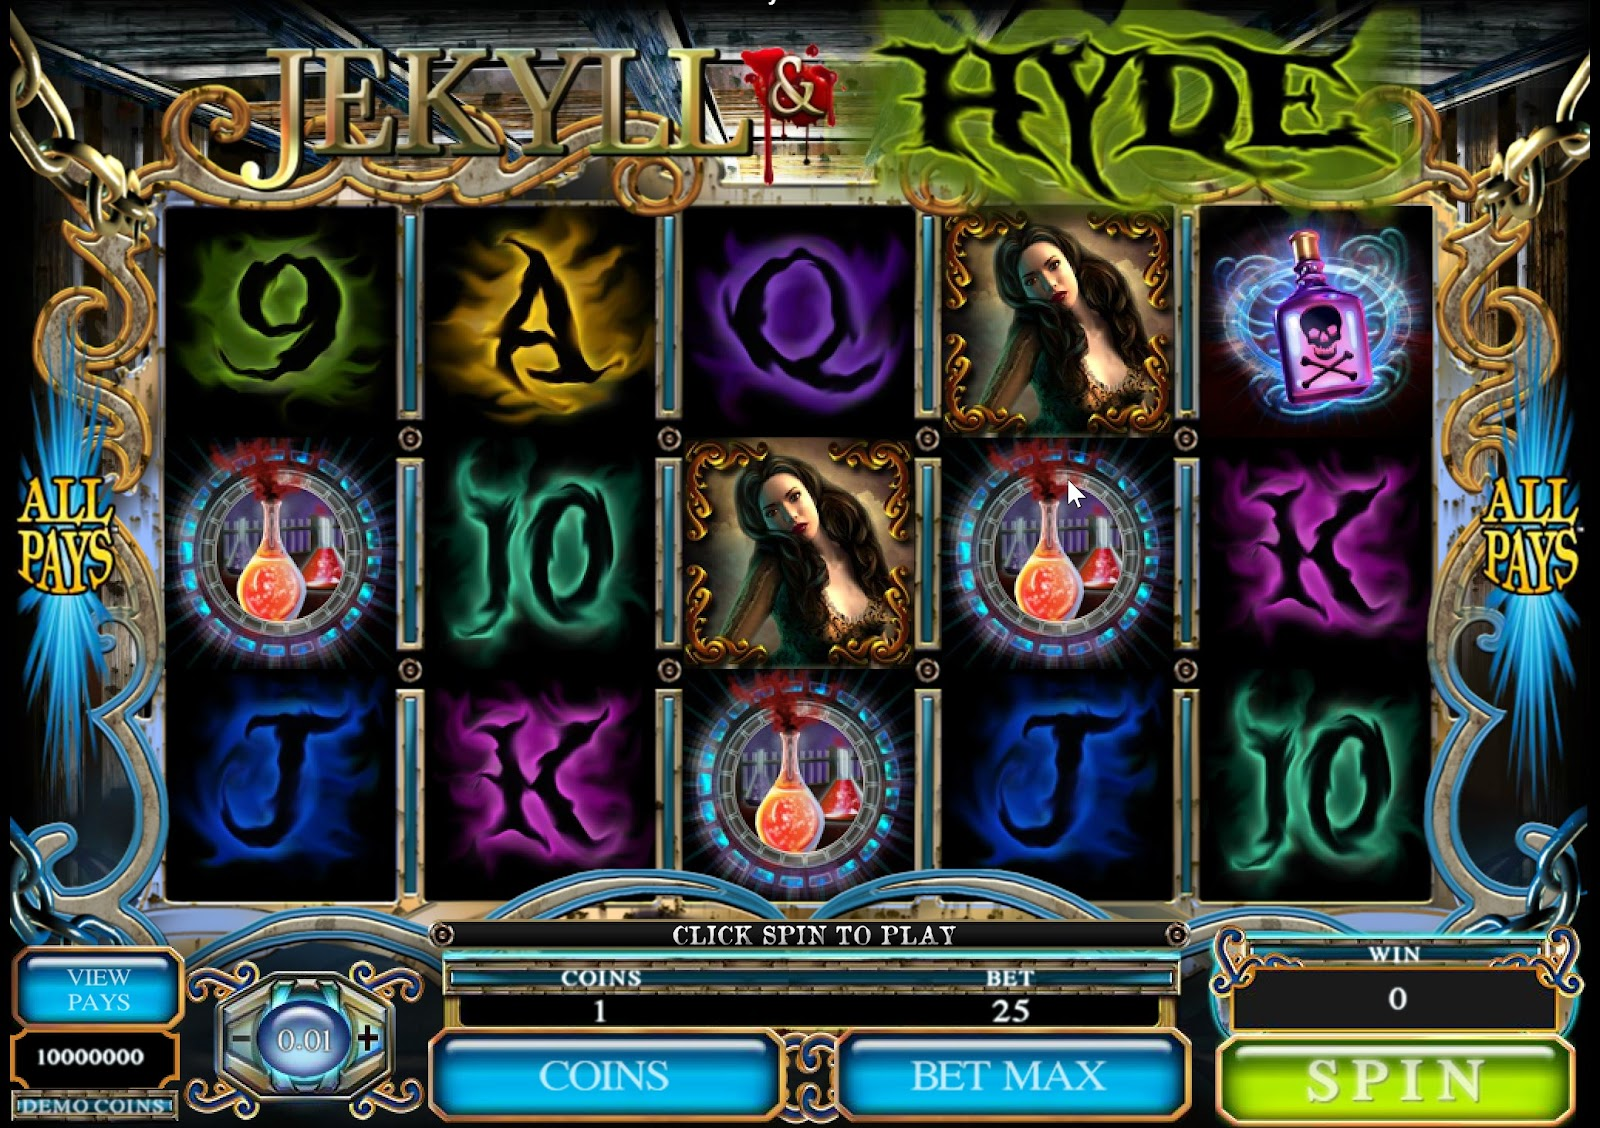 Jekyll & Hyde Slots Game Review